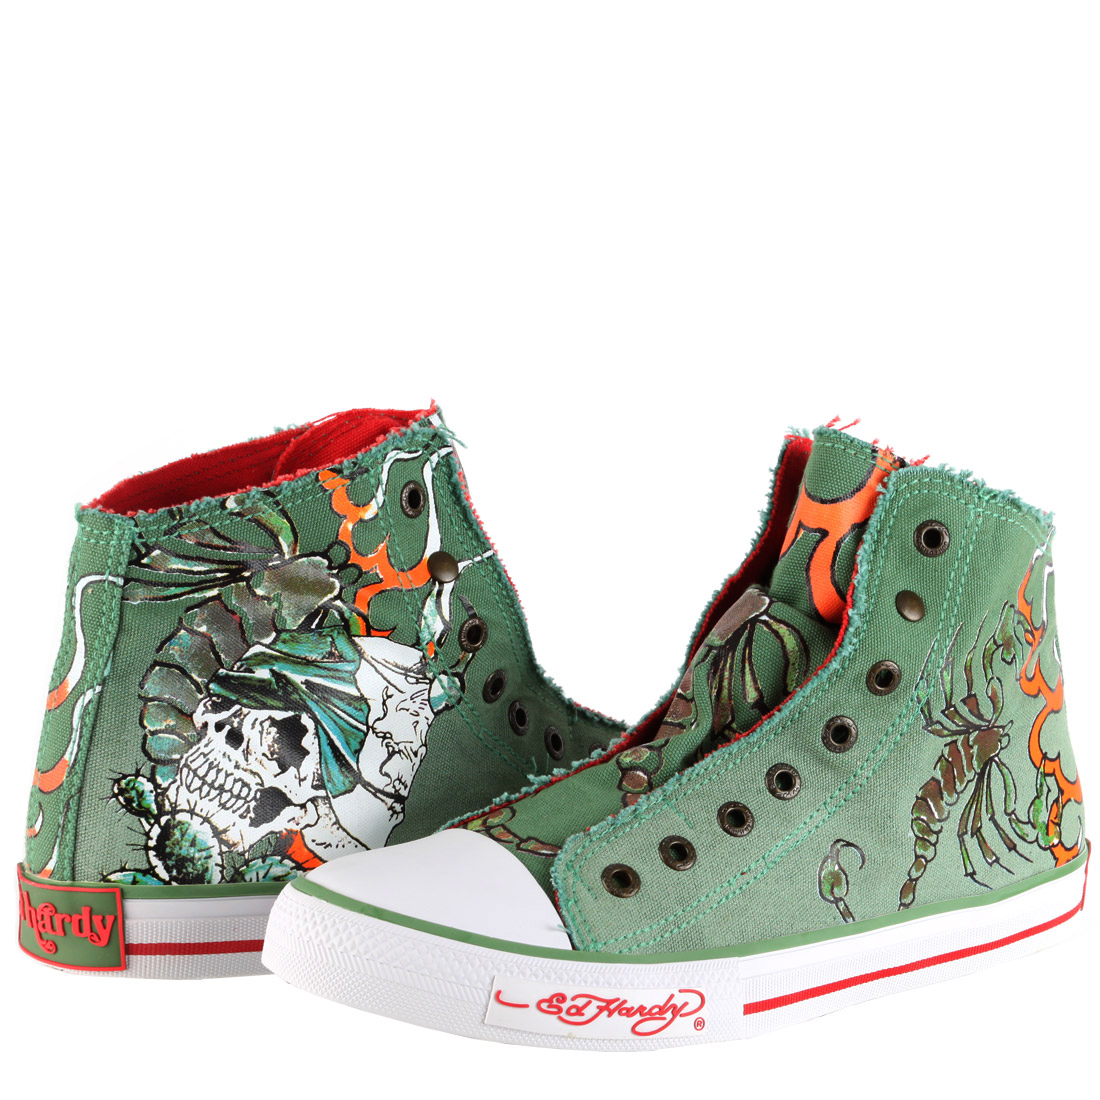 Ed Hardy Highrise Sneaker for Men - Military